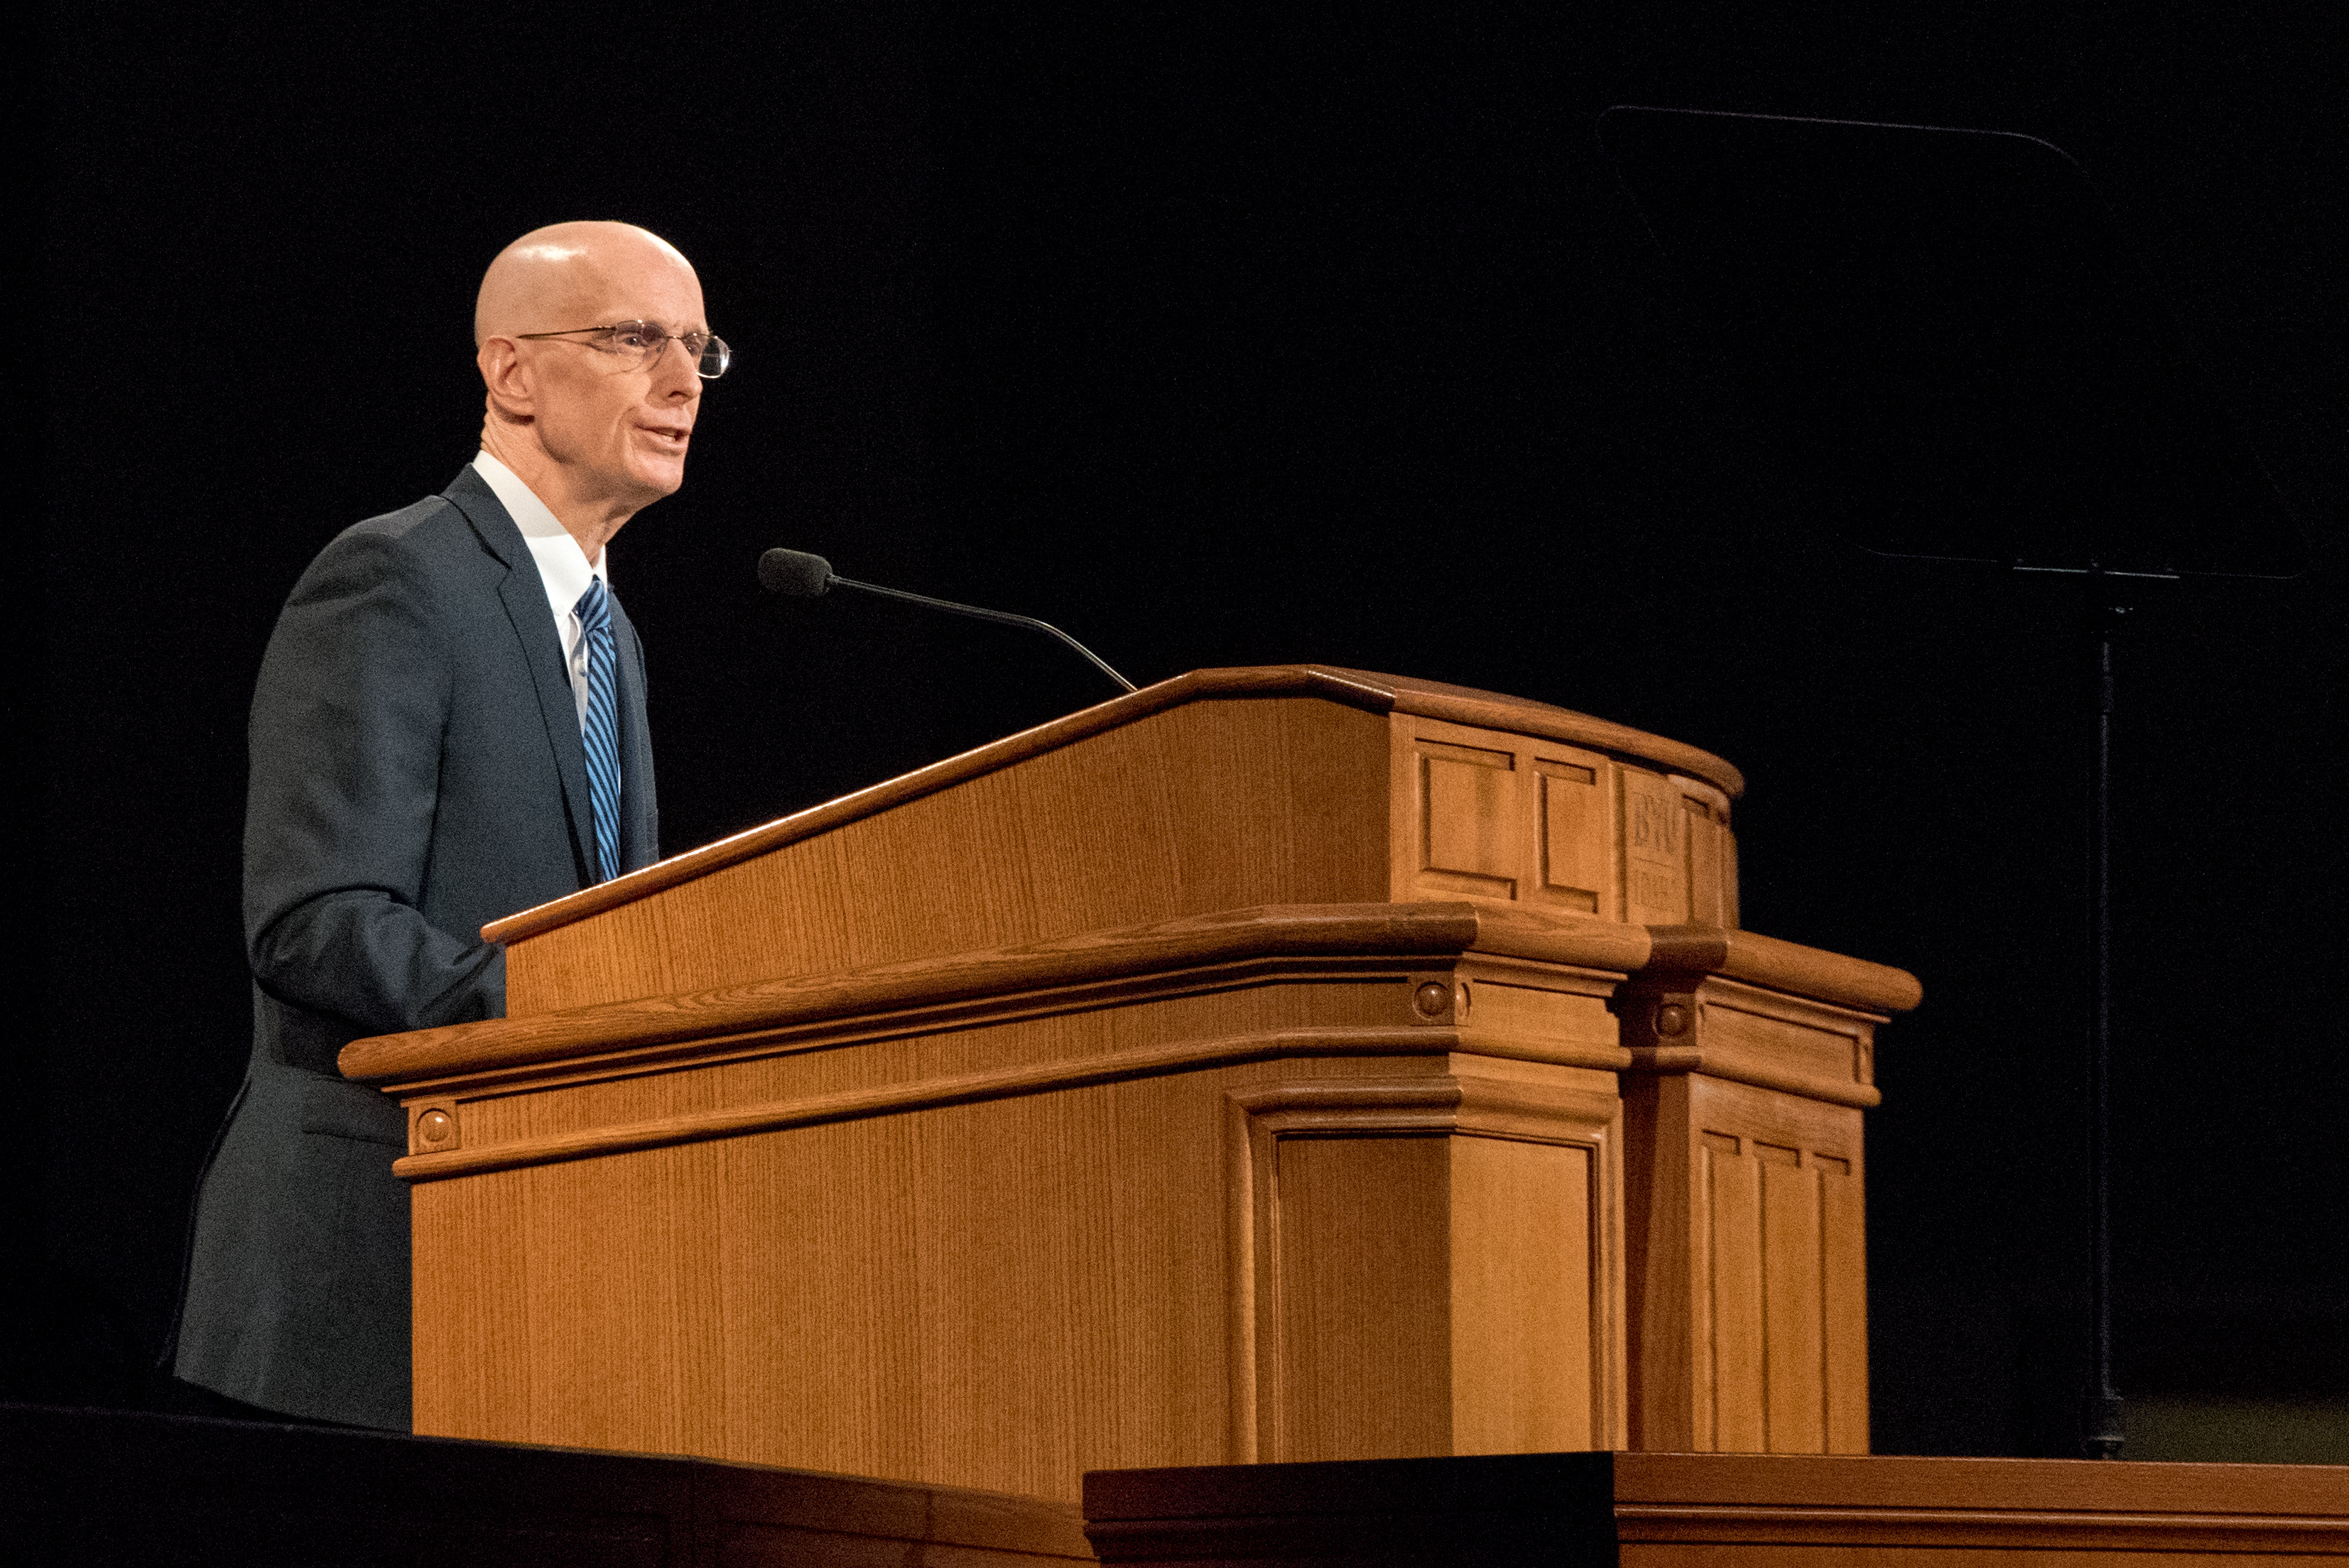 BYU-Idaho President Henry J. Eyring speaks in the BYU-Idaho Center during the first devotional of Fall semester on Sept. 18, 2018.